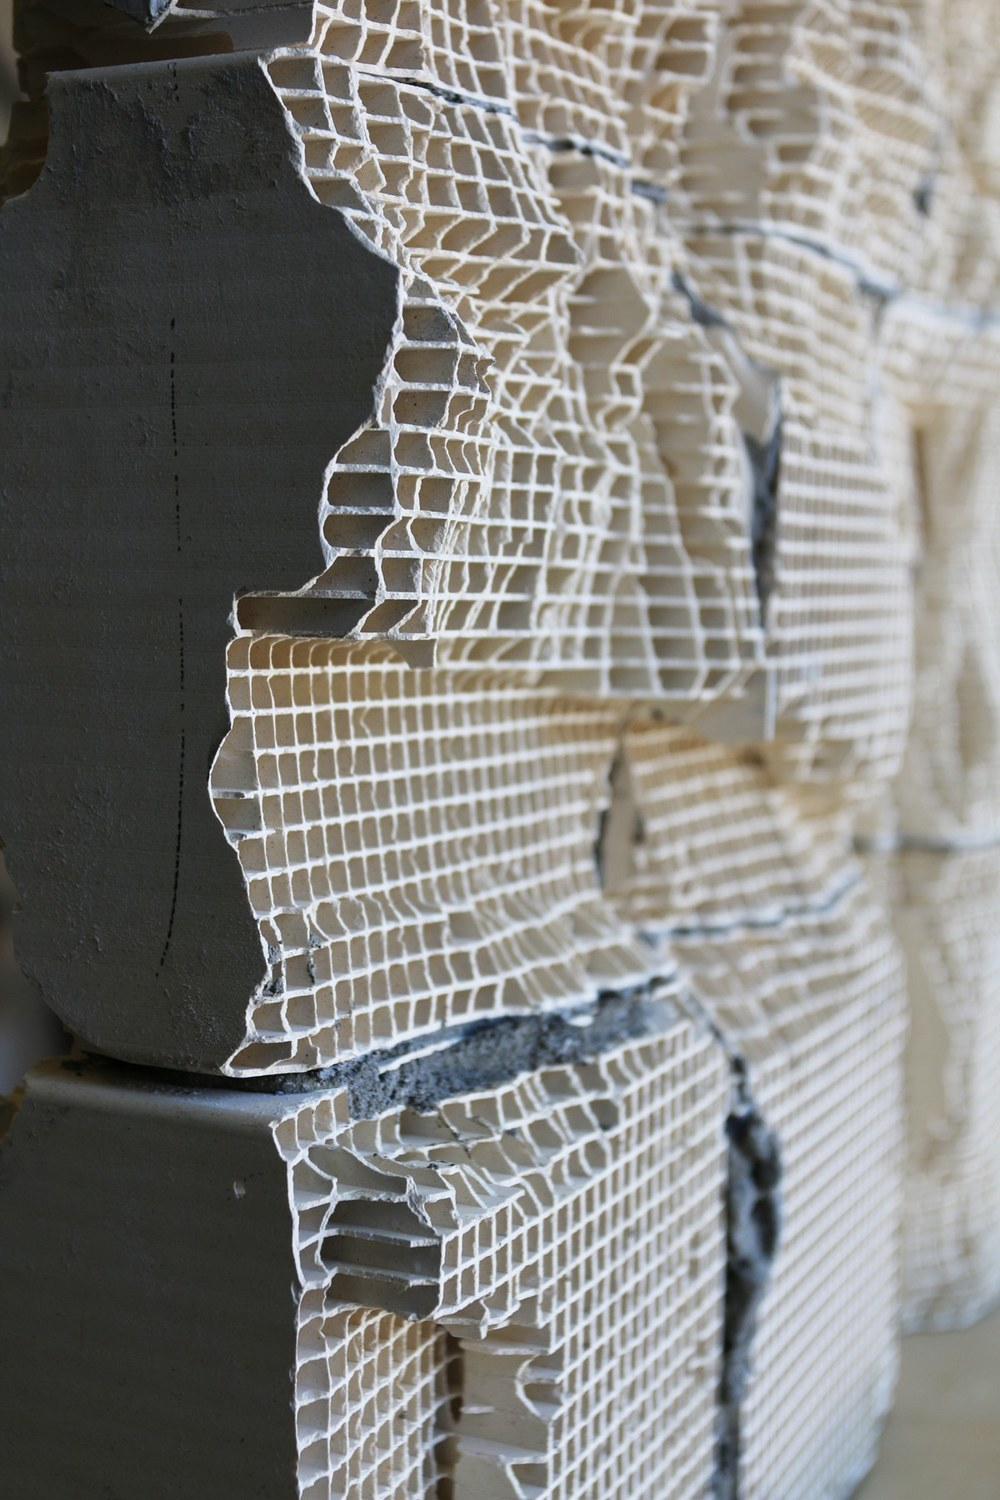 Randy Colosky, detail of engineered ceramic work (in progress)2014